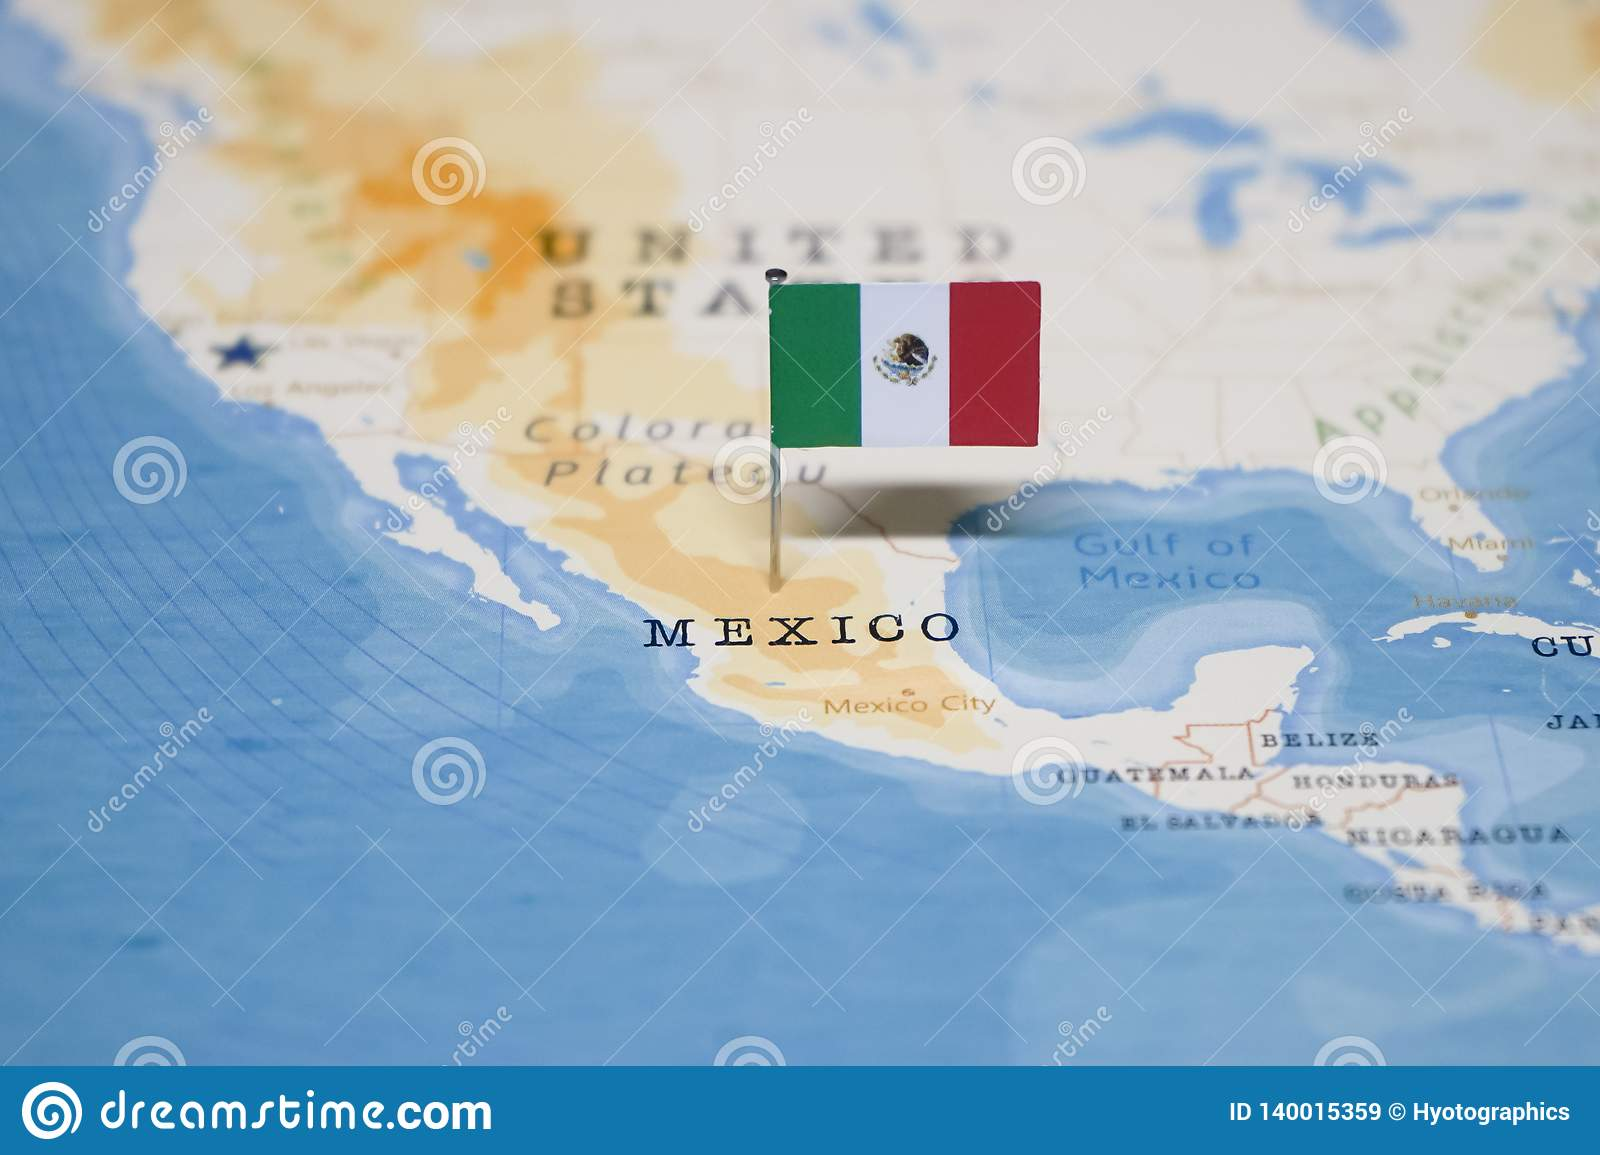 The Flag of mexico in the world map